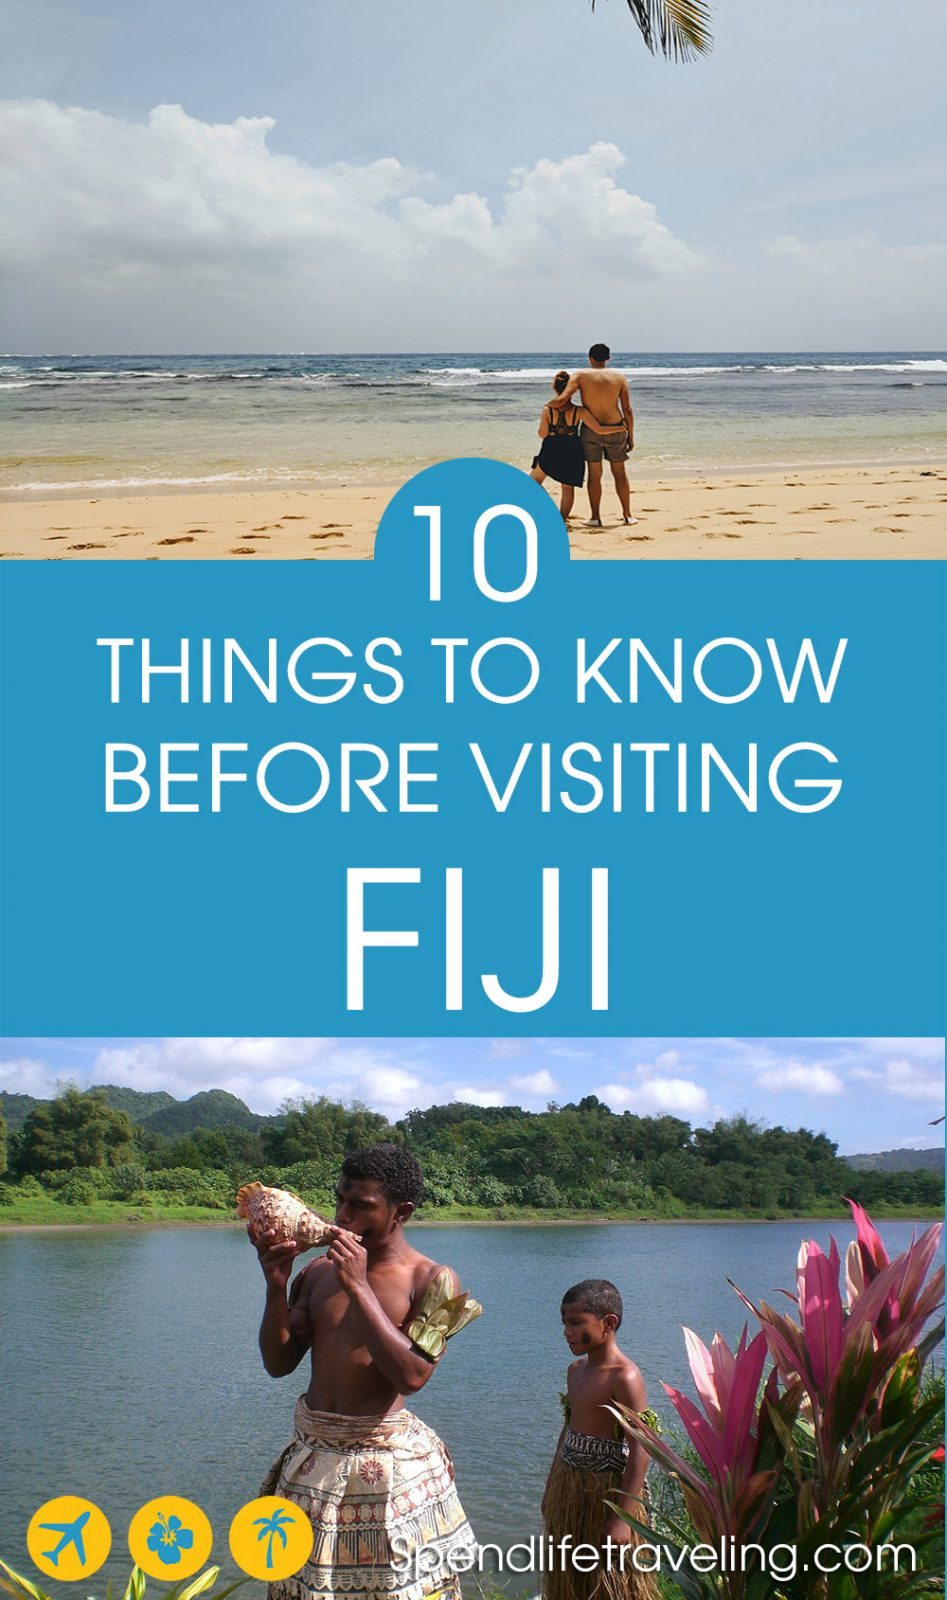 10 things to know about Fiji to make the most out of your trip